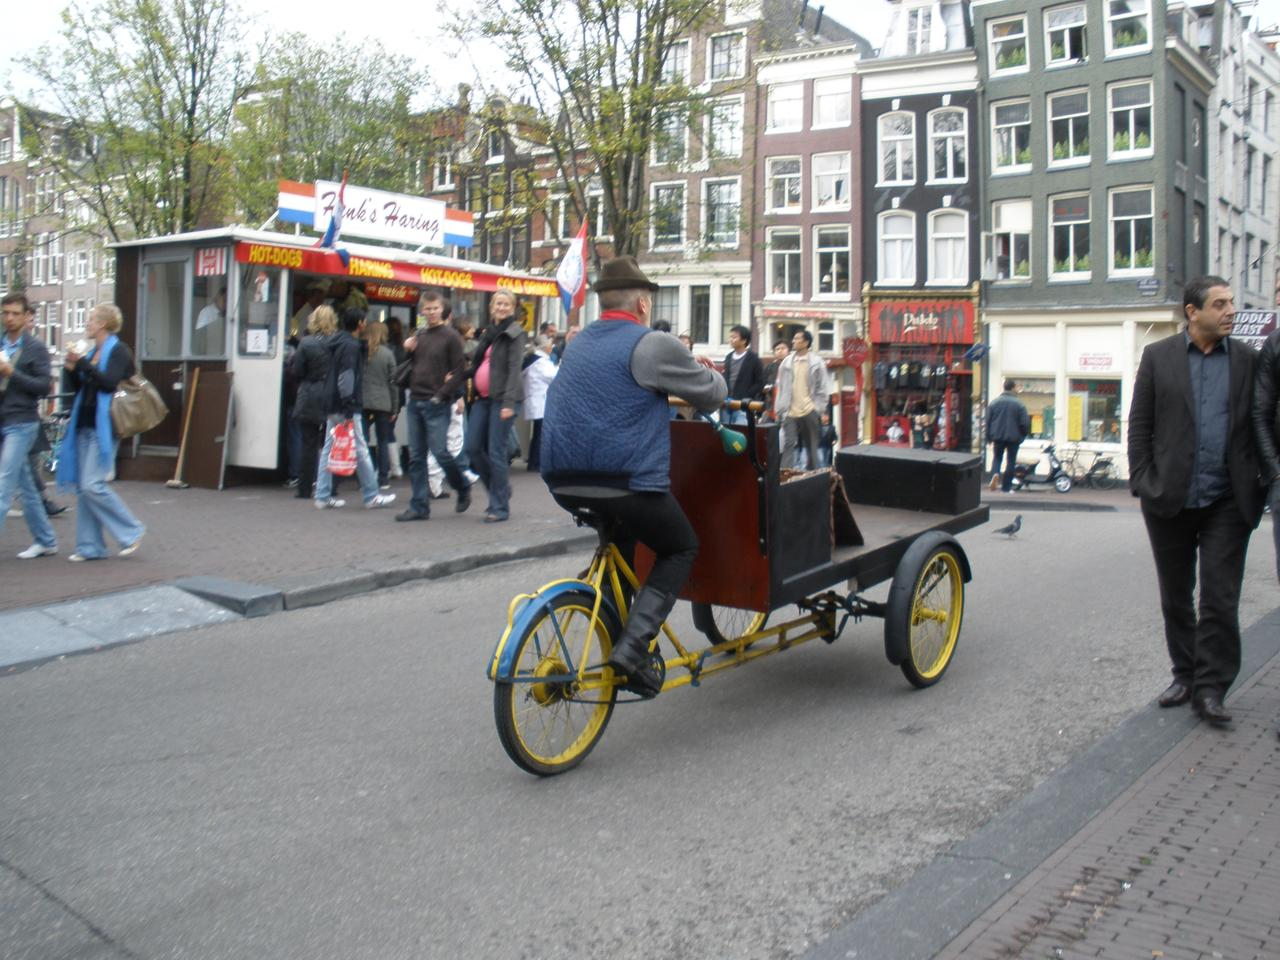 Amsterdam is a city designed around using the bicycle as the primary form of transport